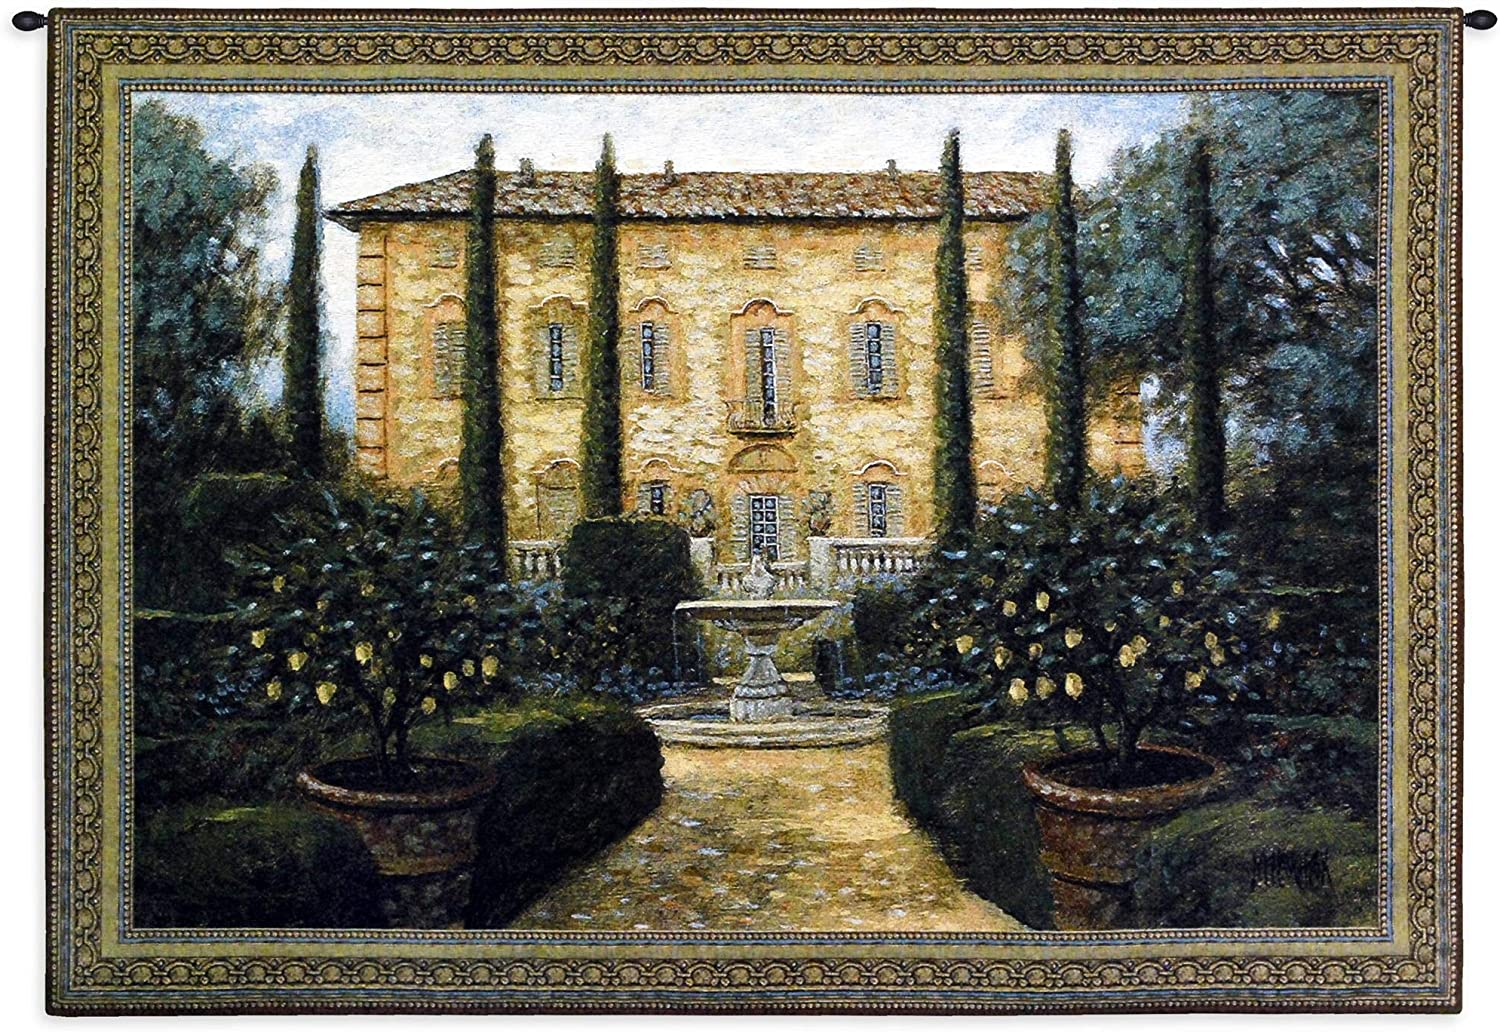 Amazon Com Italian Villa By Jon Mcnaughton Woven Tapestry Wall Art Hanging Stately Italian Villa Home Courtyard 100 Cotton Usa Size 53x36 Everything Else